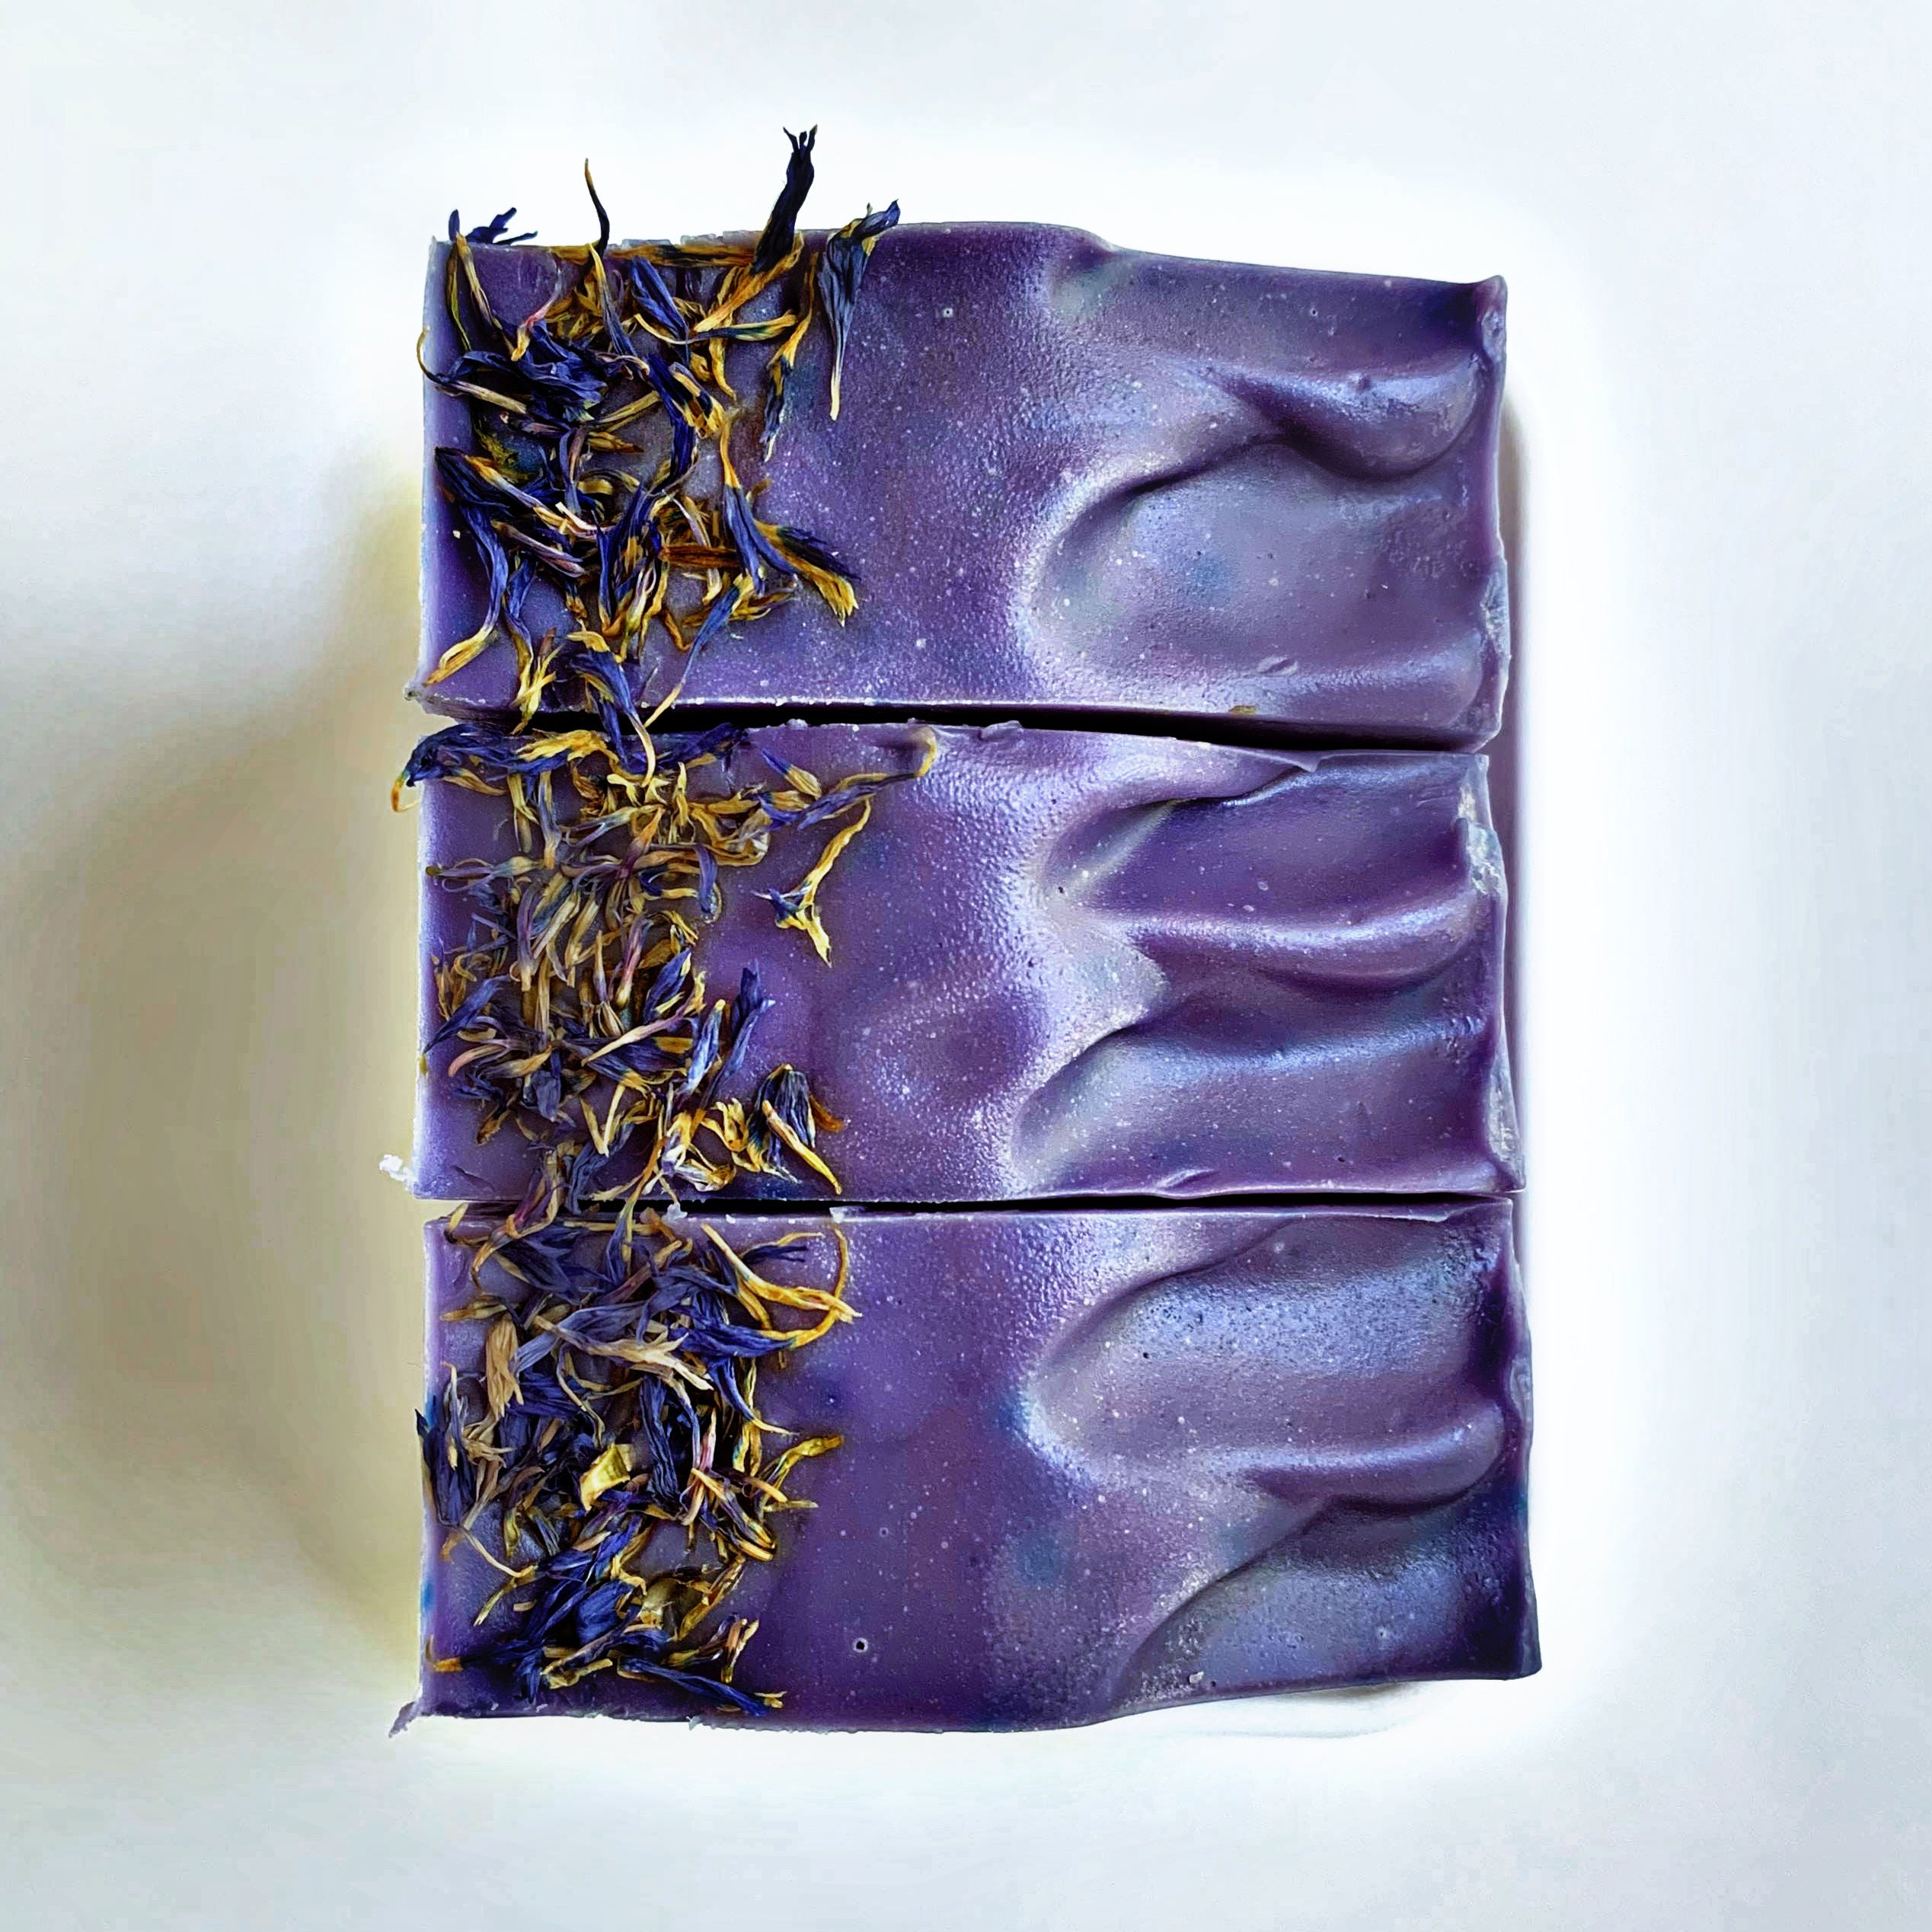 Salt and Wildflowers Cold Process Soap